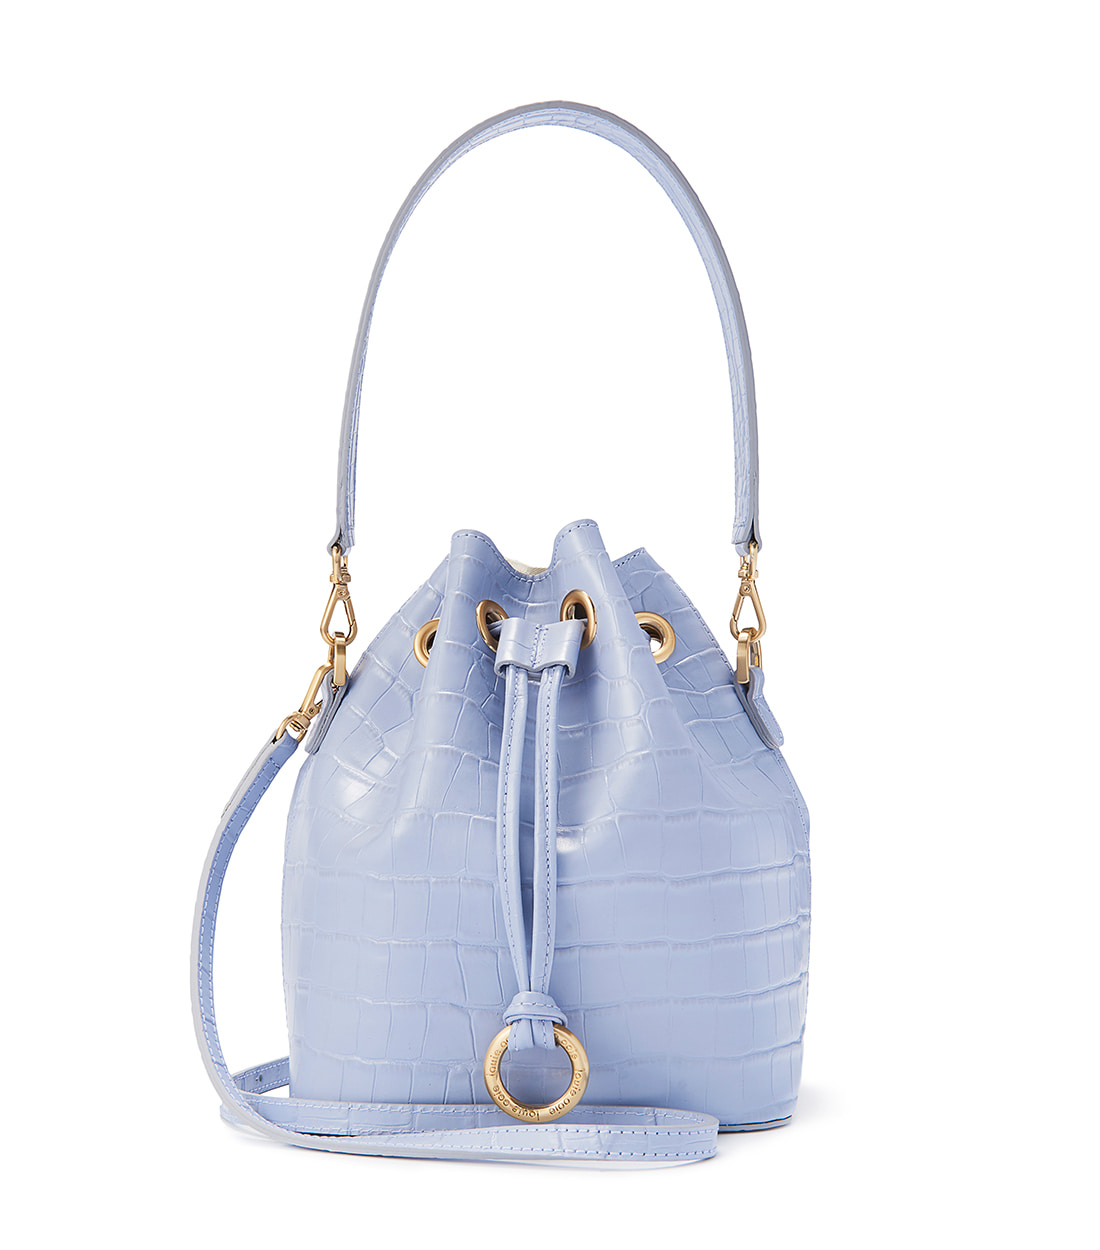 jane bag - airy blue embo [refurb 50%]